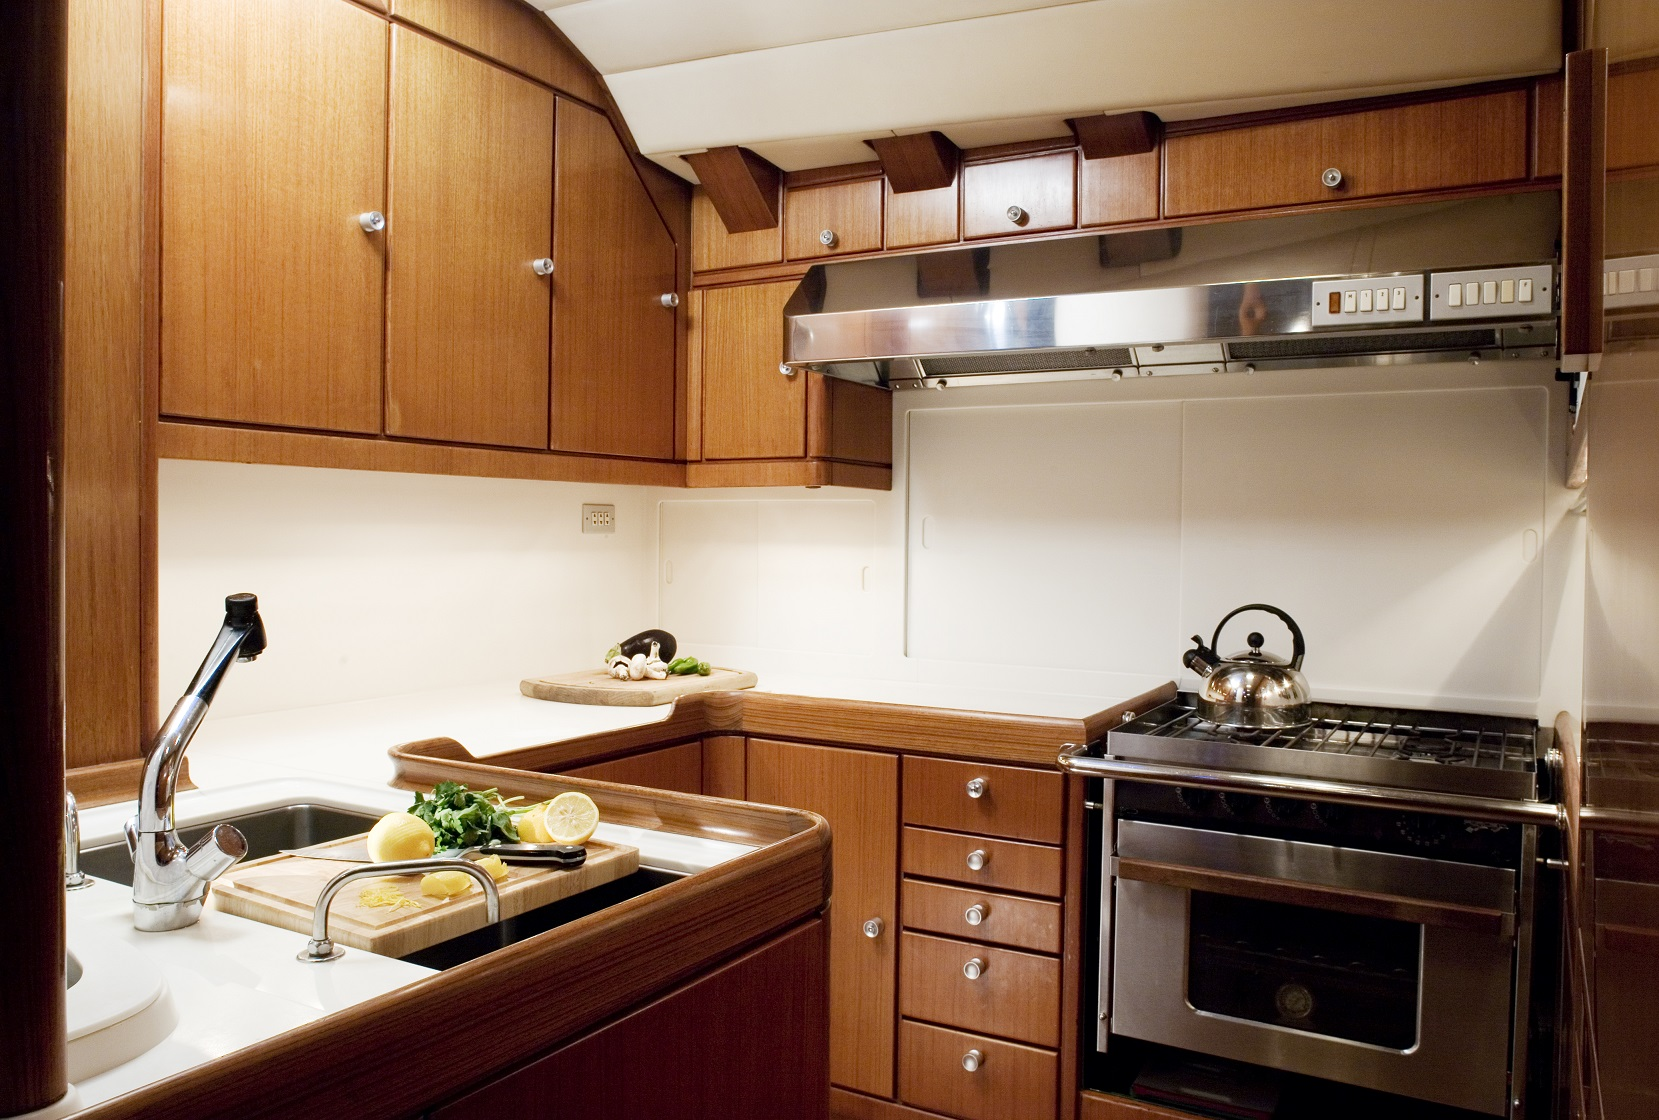 S/Y CYCLOS II yacht for charter kitchen area